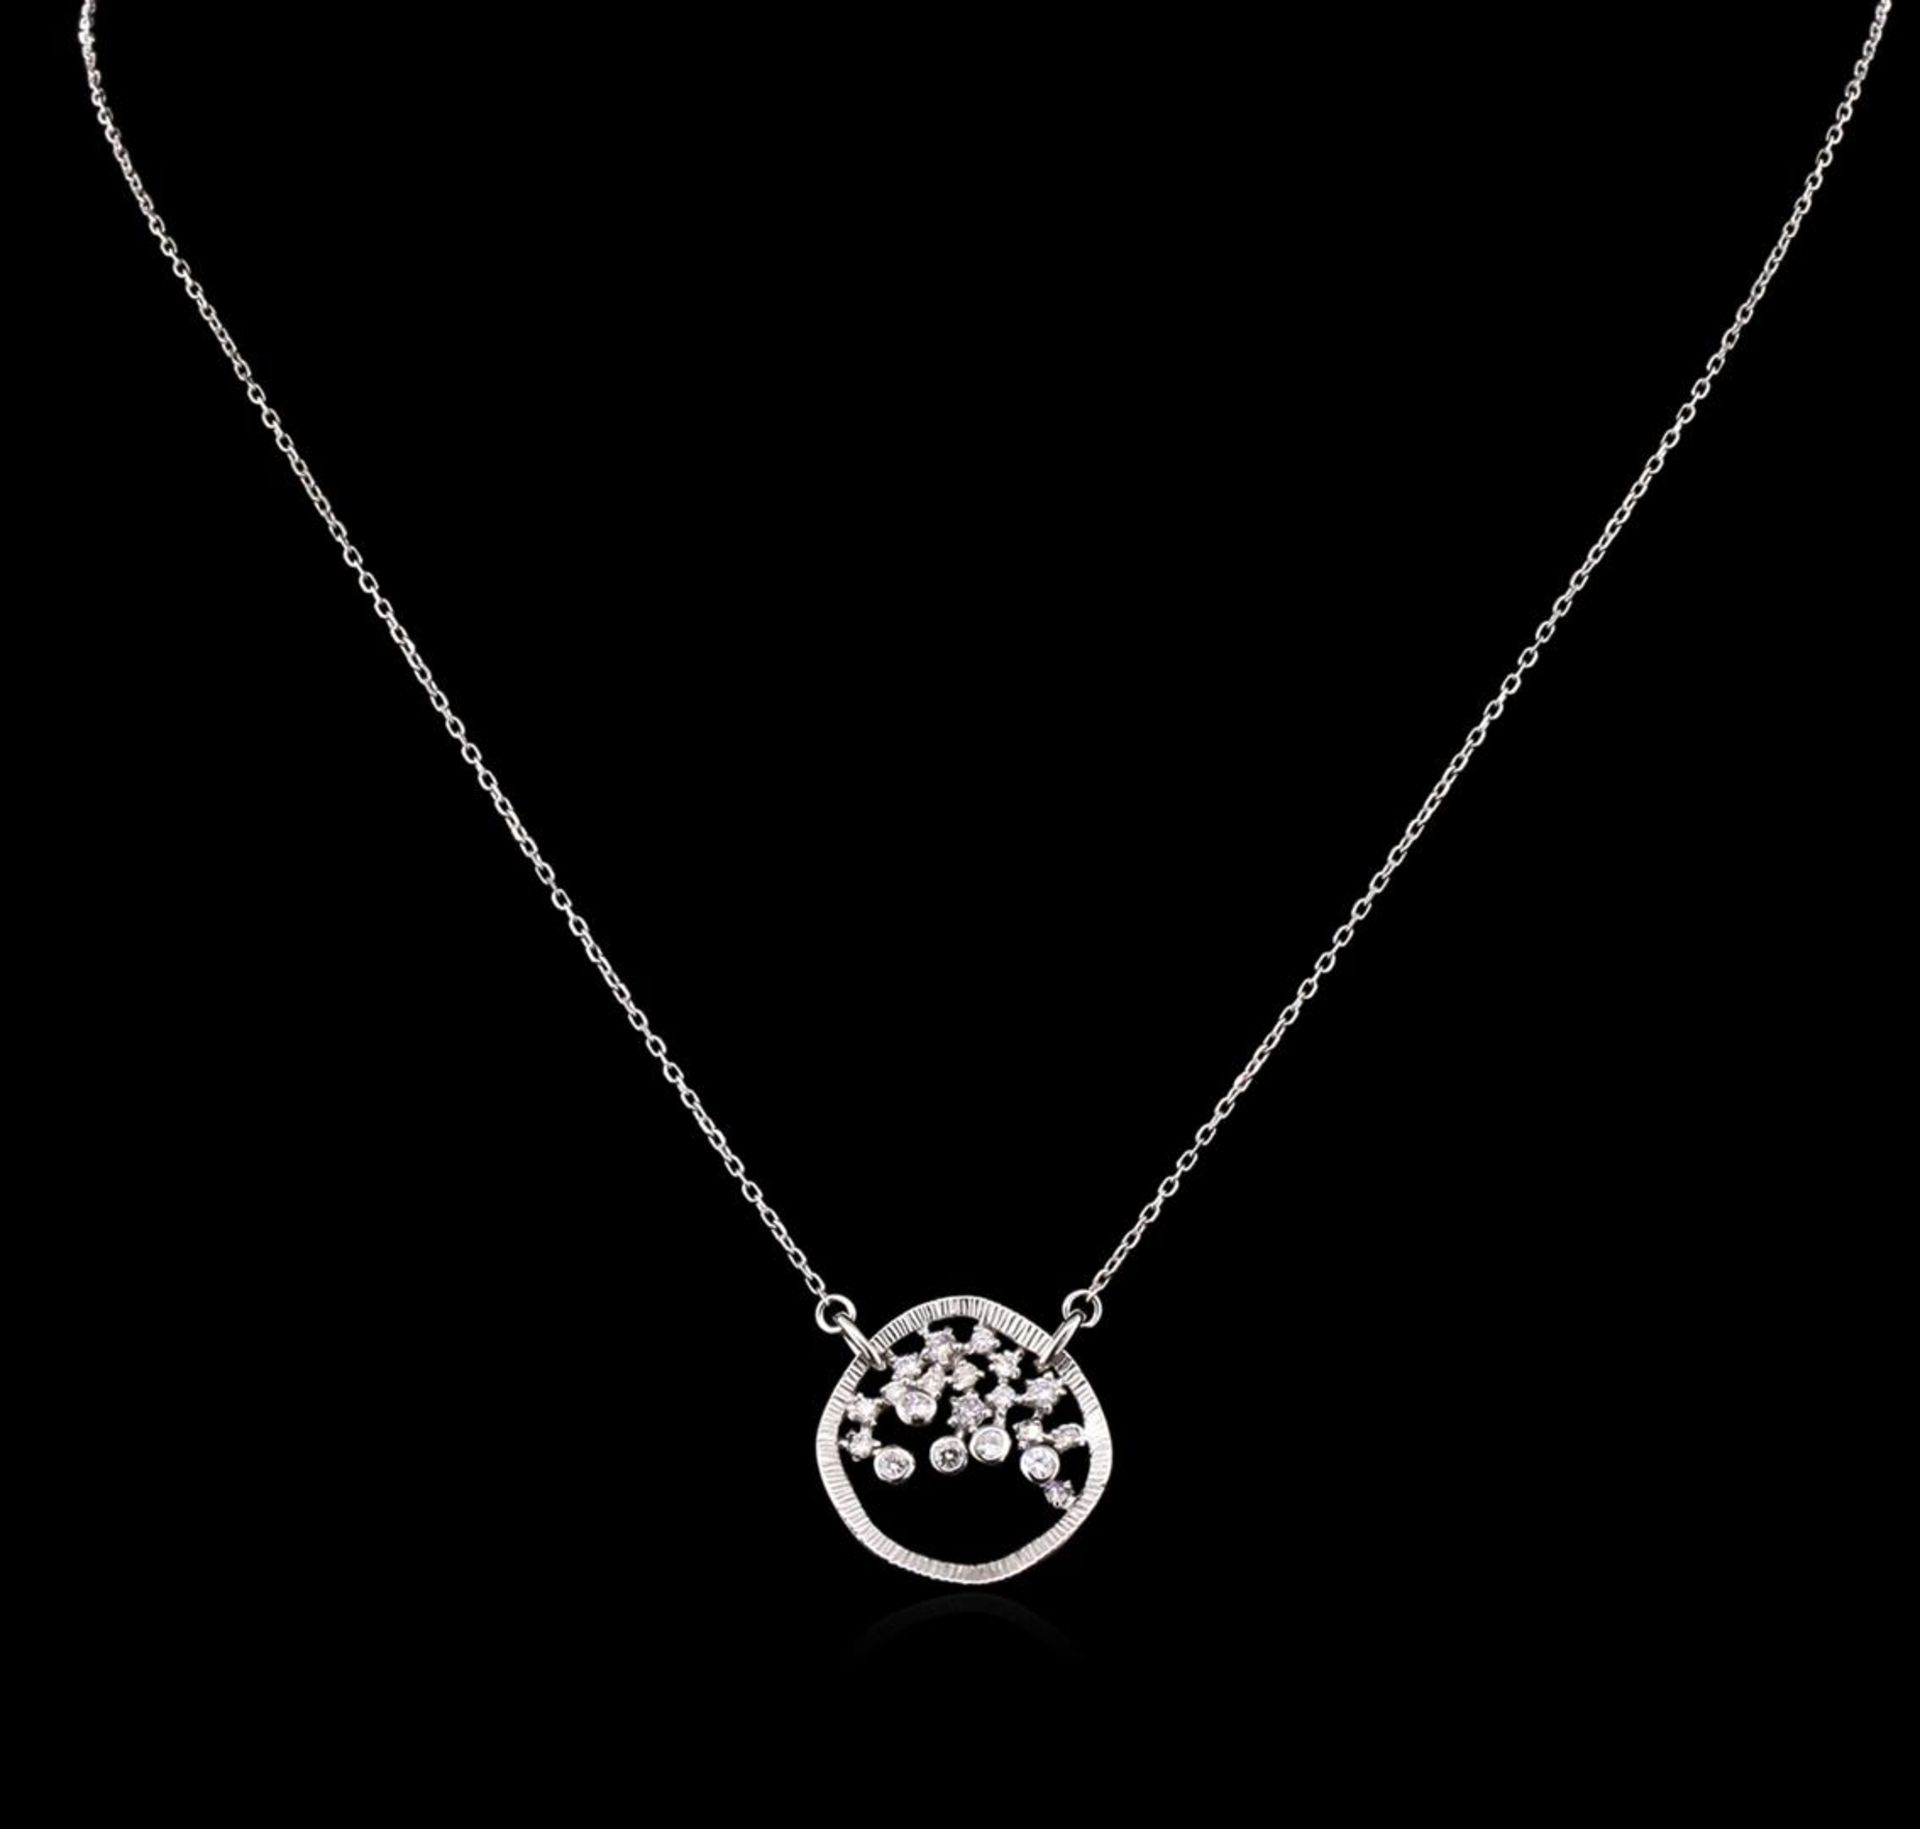 0.34 ctw Diamond Necklace - 14KT White Gold - Image 2 of 2